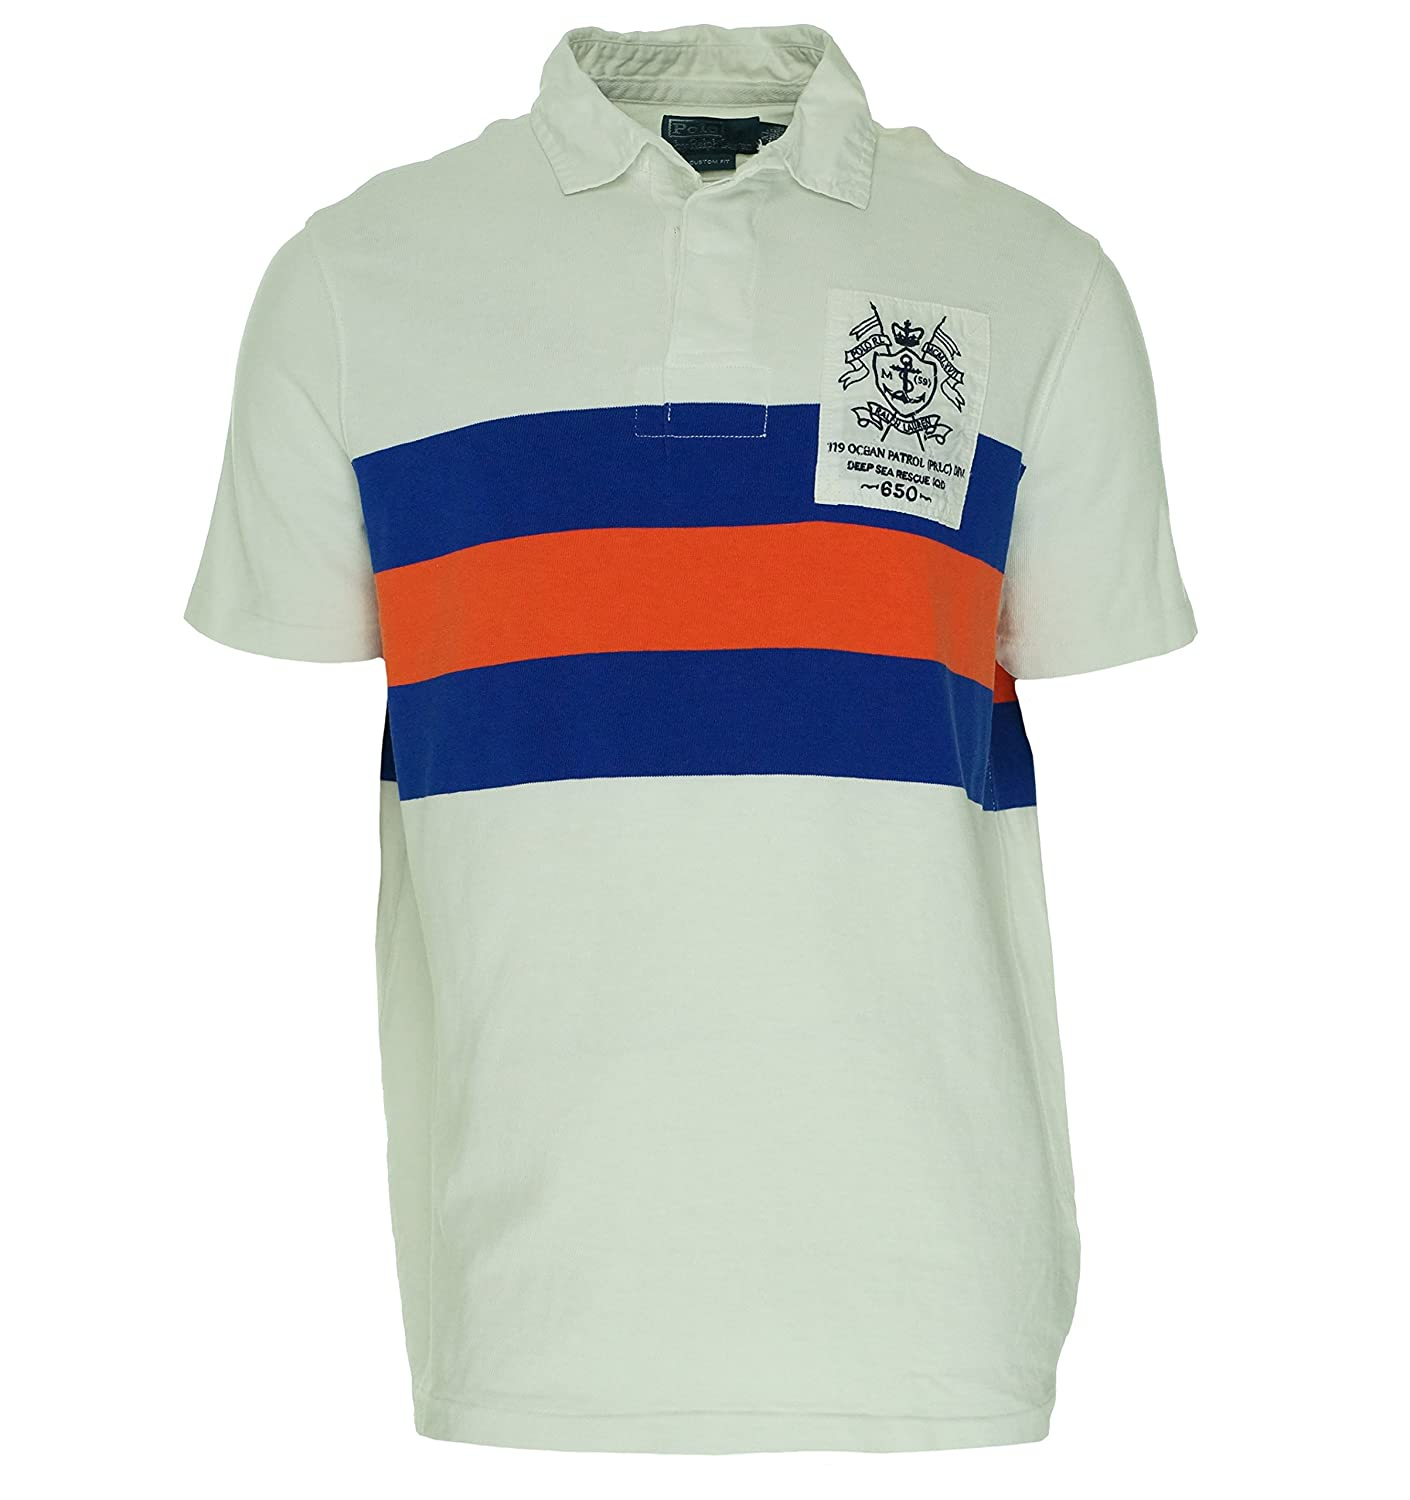 25d92feeee85 Polo Ralph Lauren Mens Custom Fit Knit Rugby Shirt at Amazon Men  s Clothing